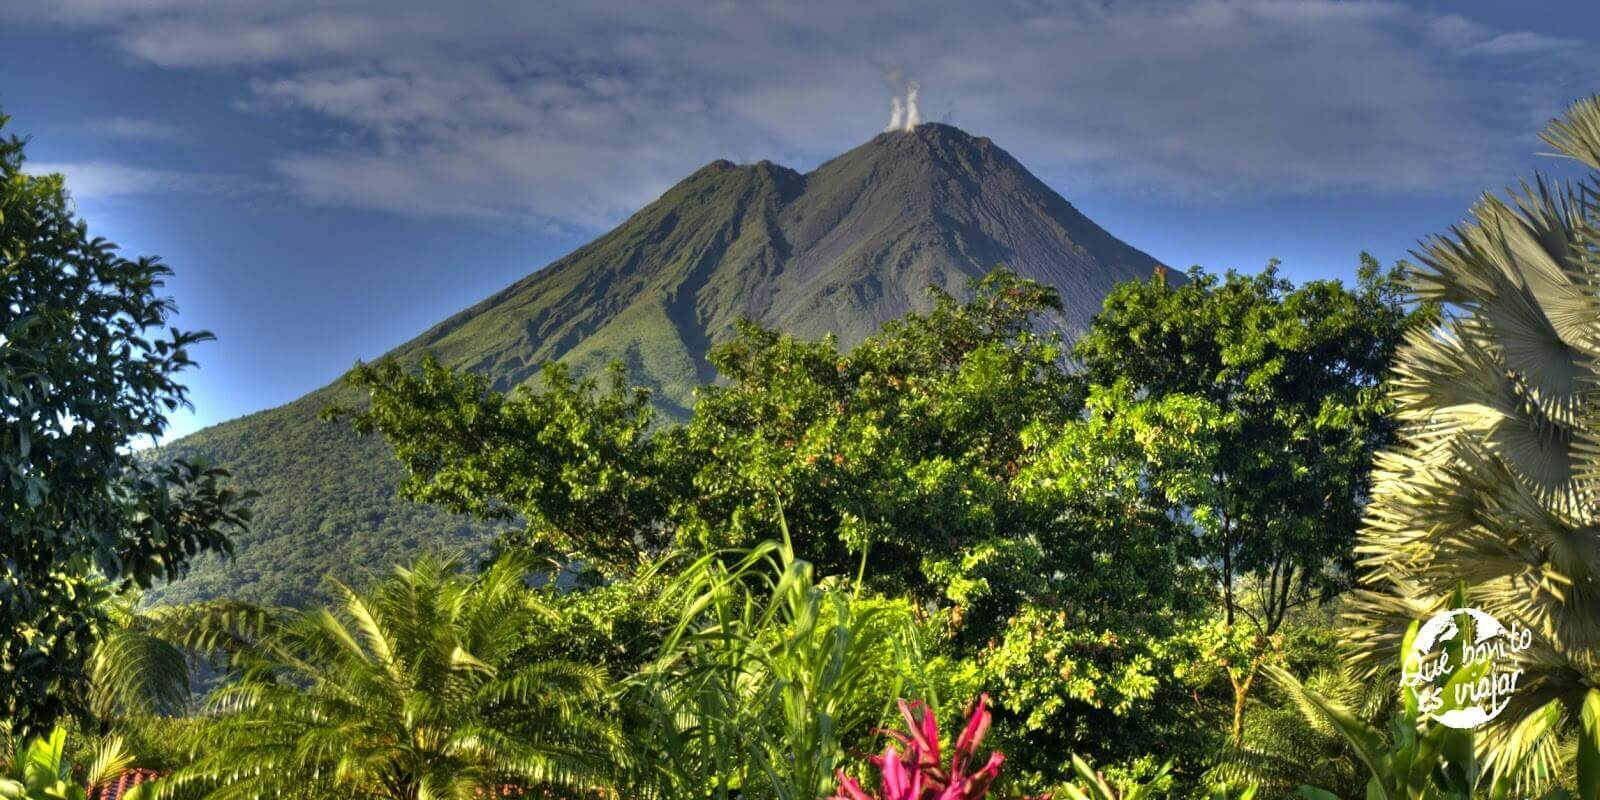 Costa Rica Set To Become The Worlds First Plastic Free And Carbon Free Country By 2021